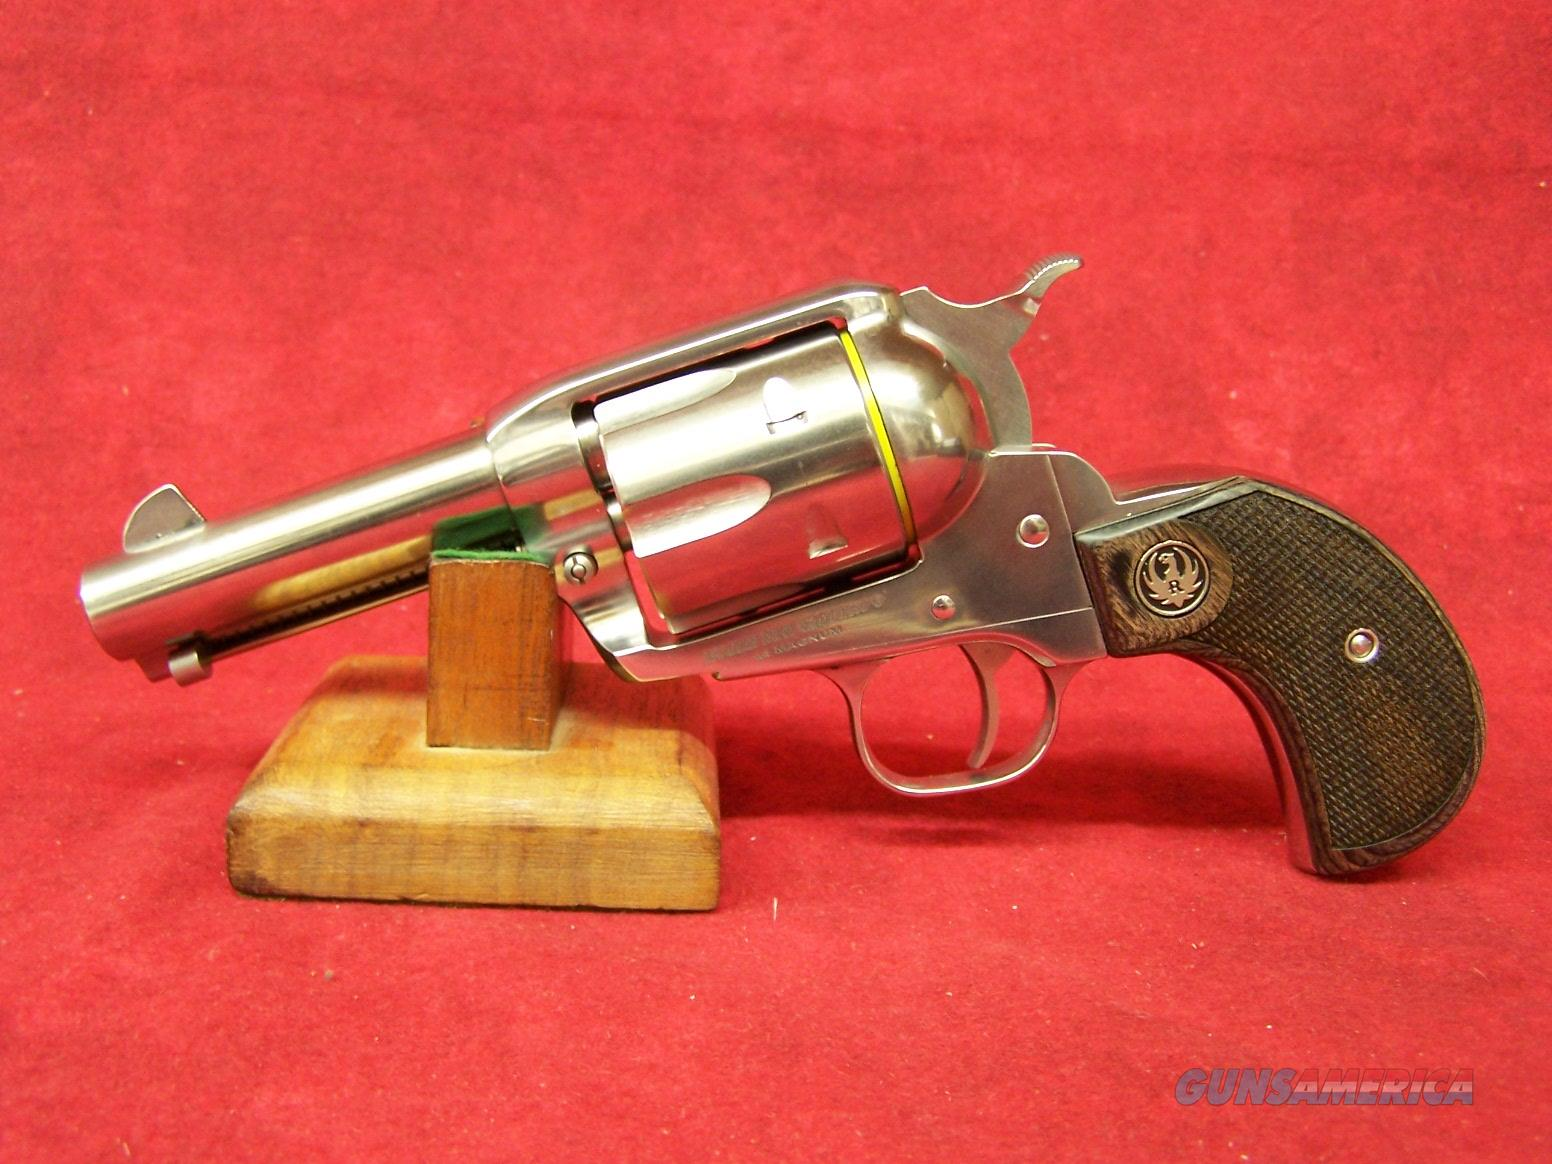 "RUGER VAQUERO 44MAG 3"" SS BIRDS-HEAD & ALTAMONT GR (10596)  Guns > Pistols > Ruger Single Action Revolvers > Cowboy Action"